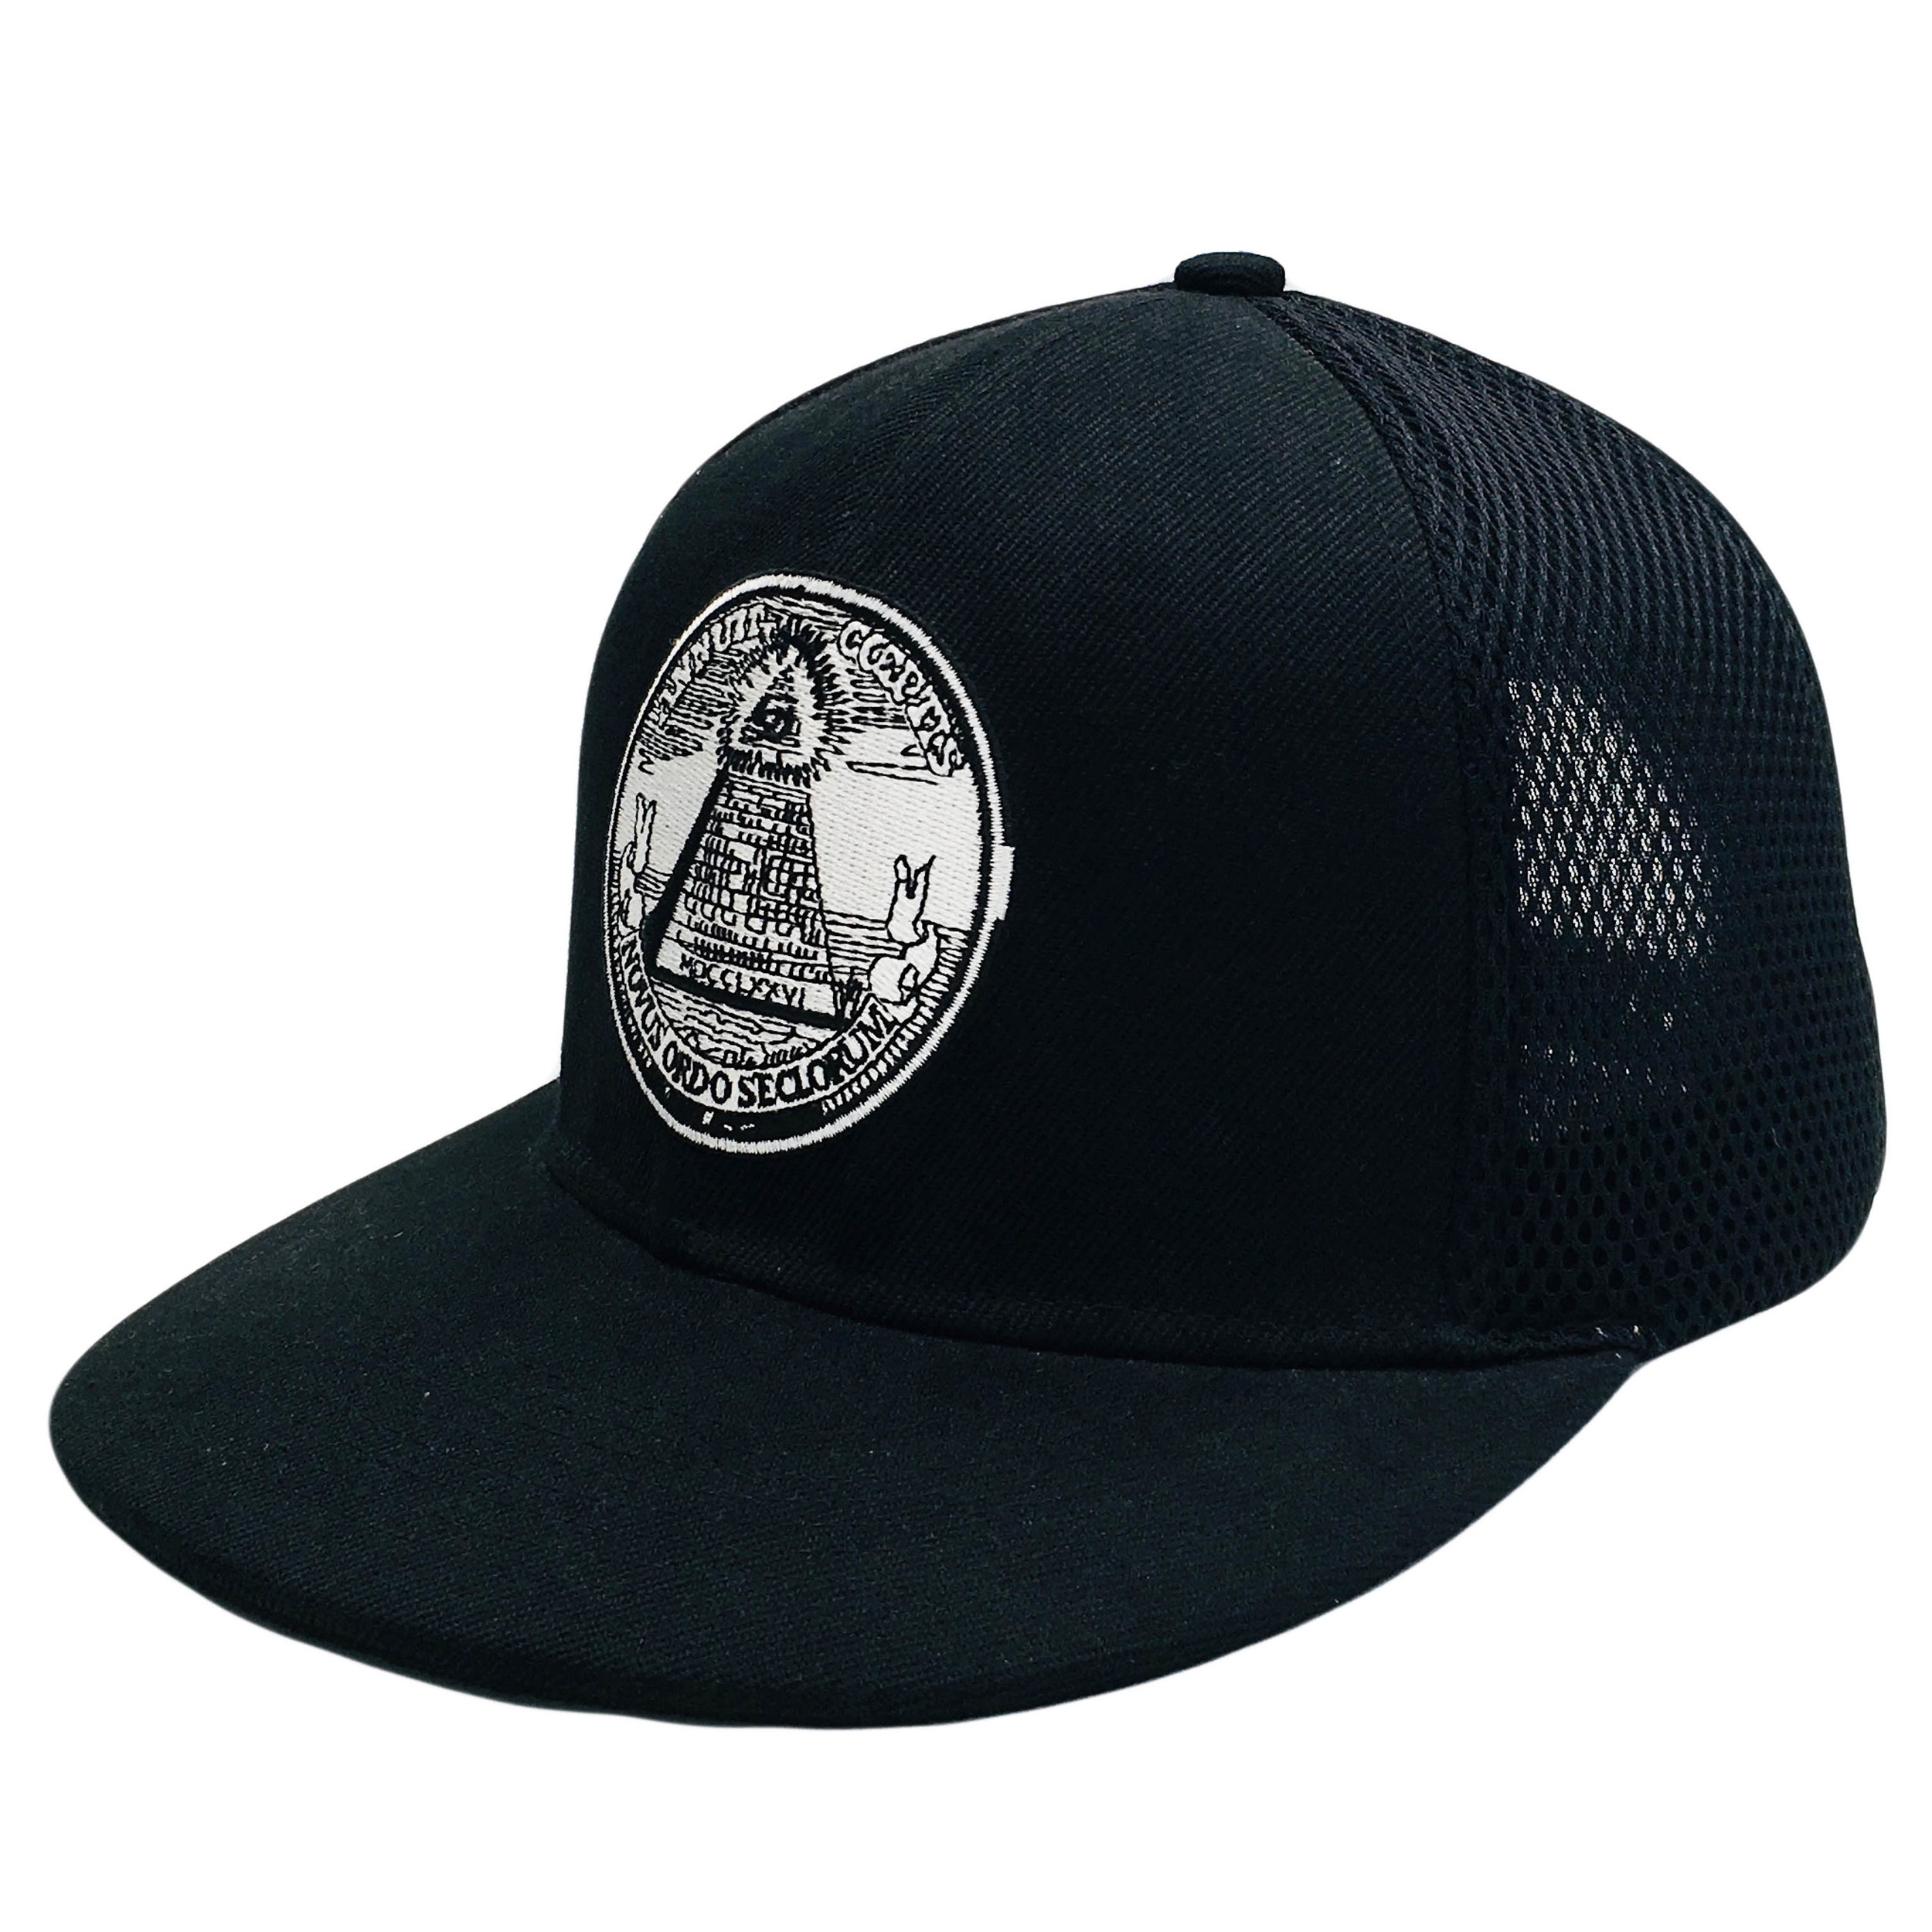 Embroidery Patch Soft Mesh Snapback Trucker